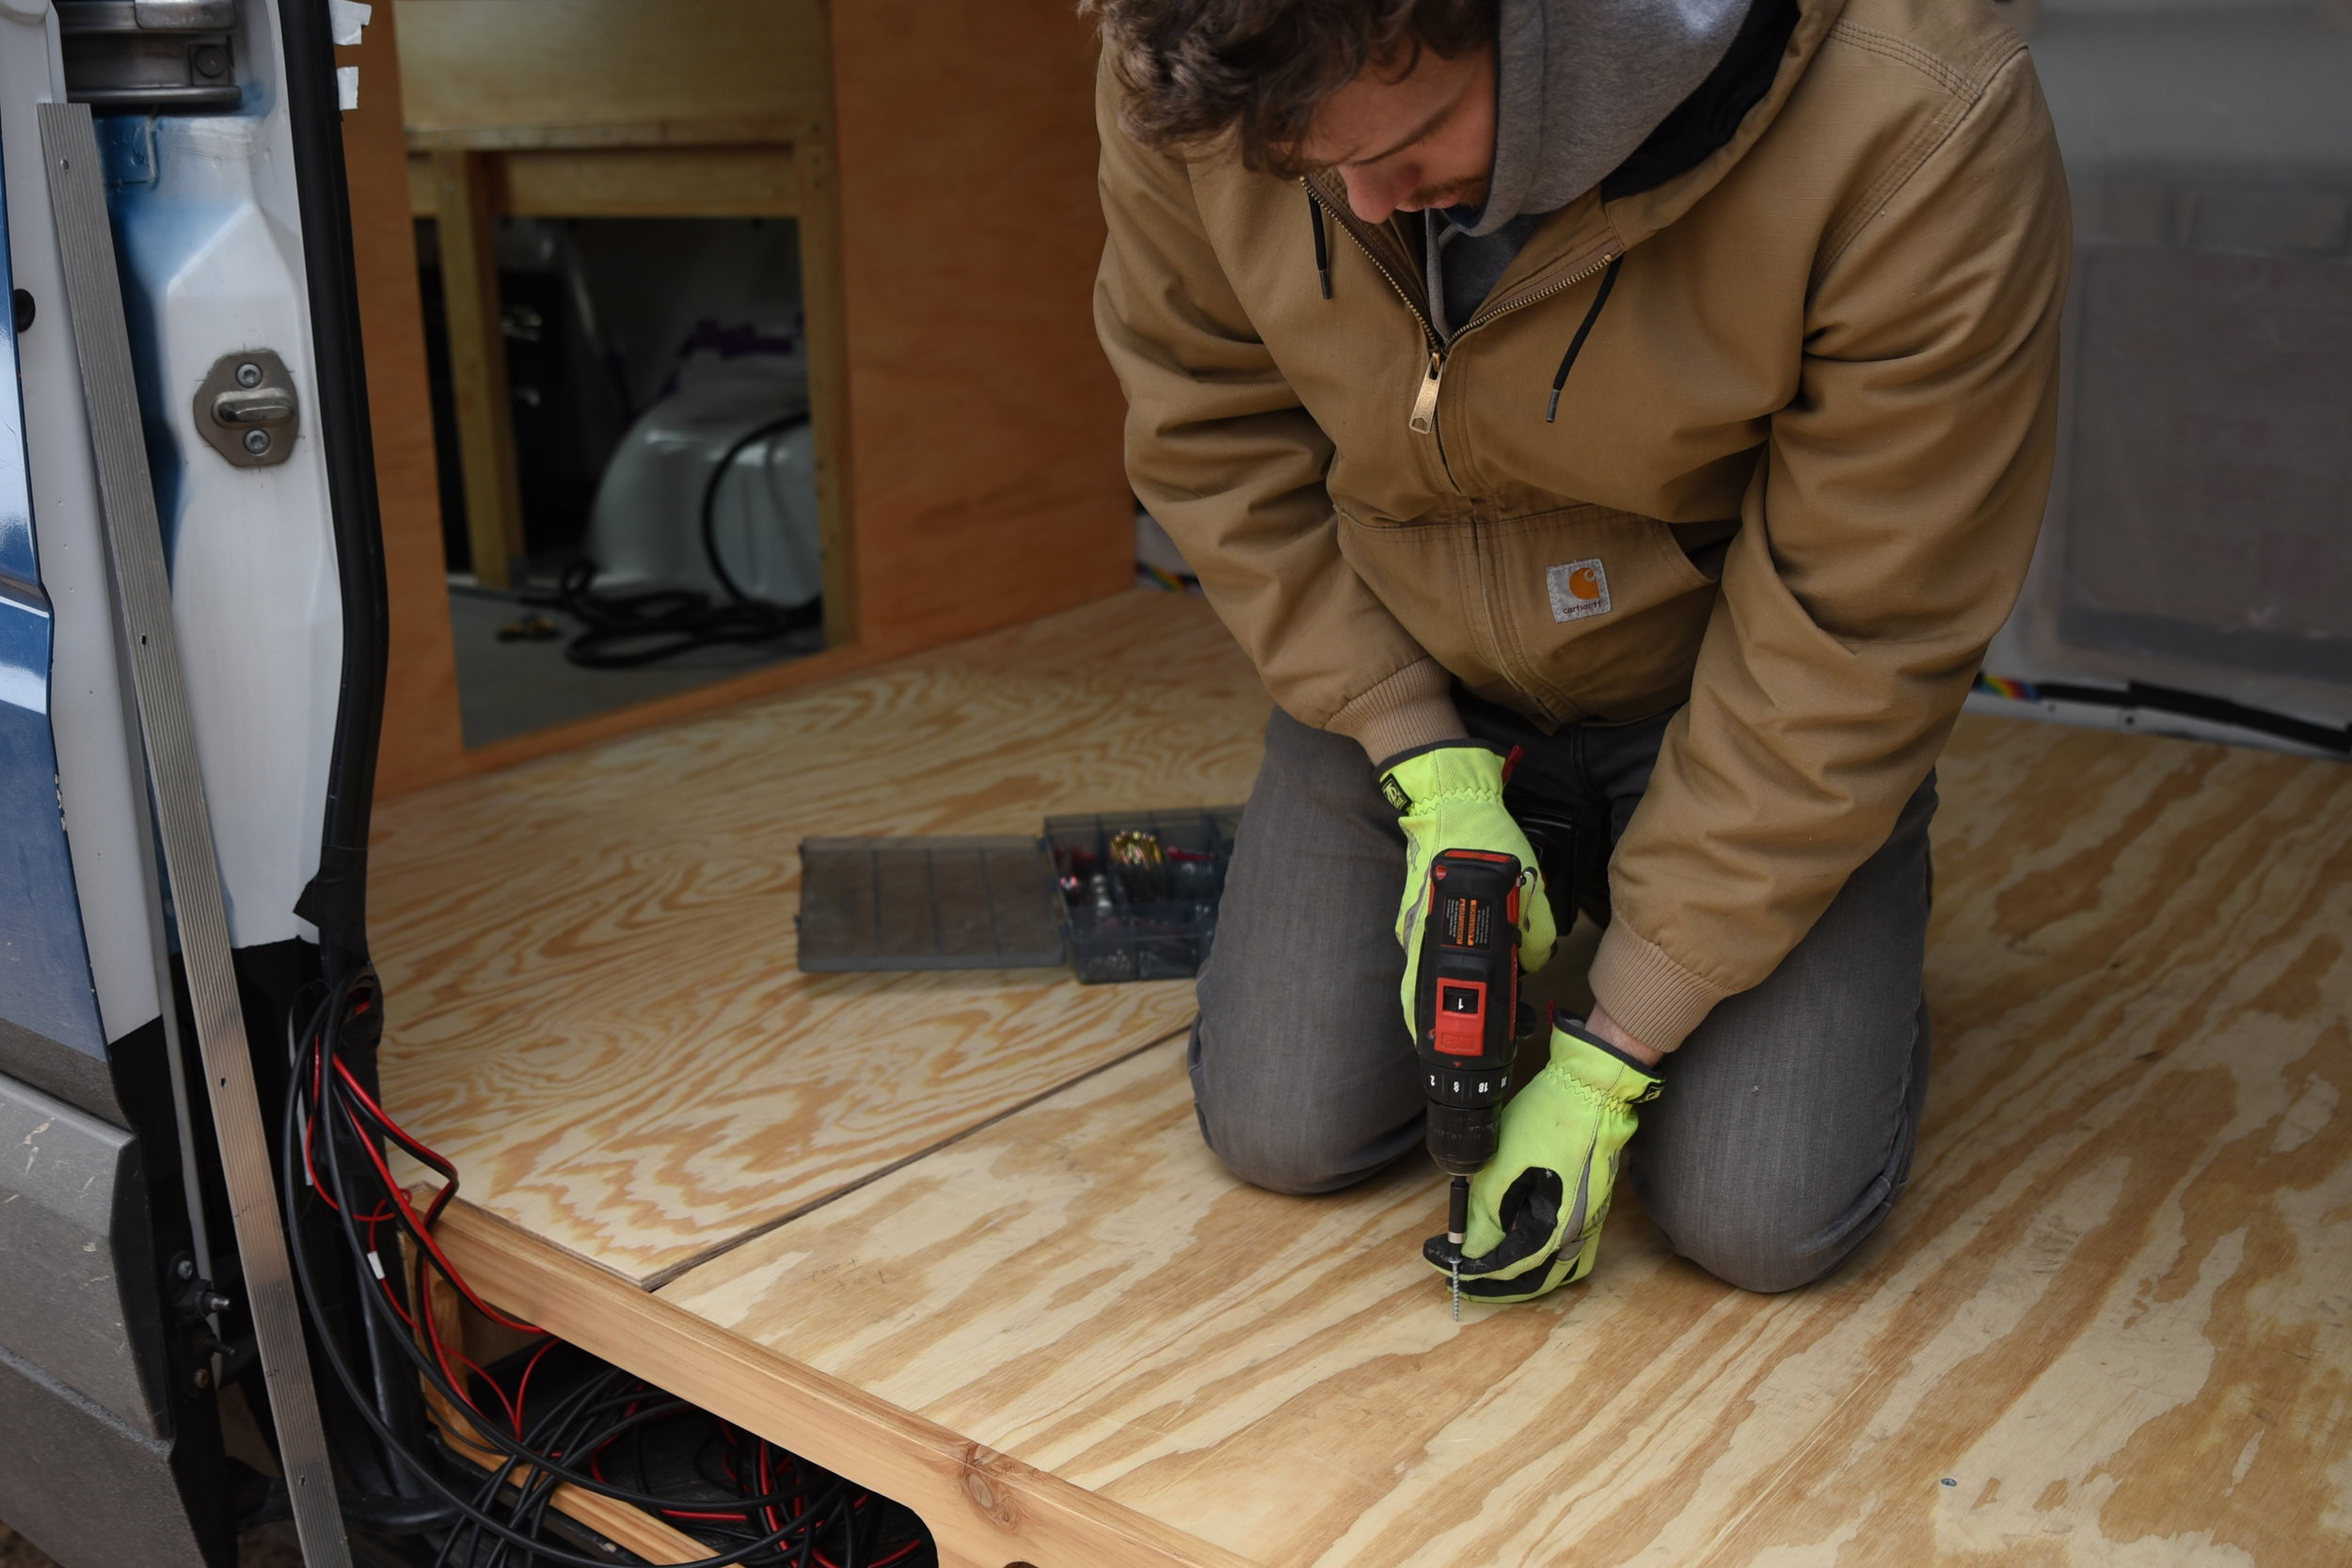 Ian screws the plywood underlayment through the foam insulation into the plywood subfloor below.